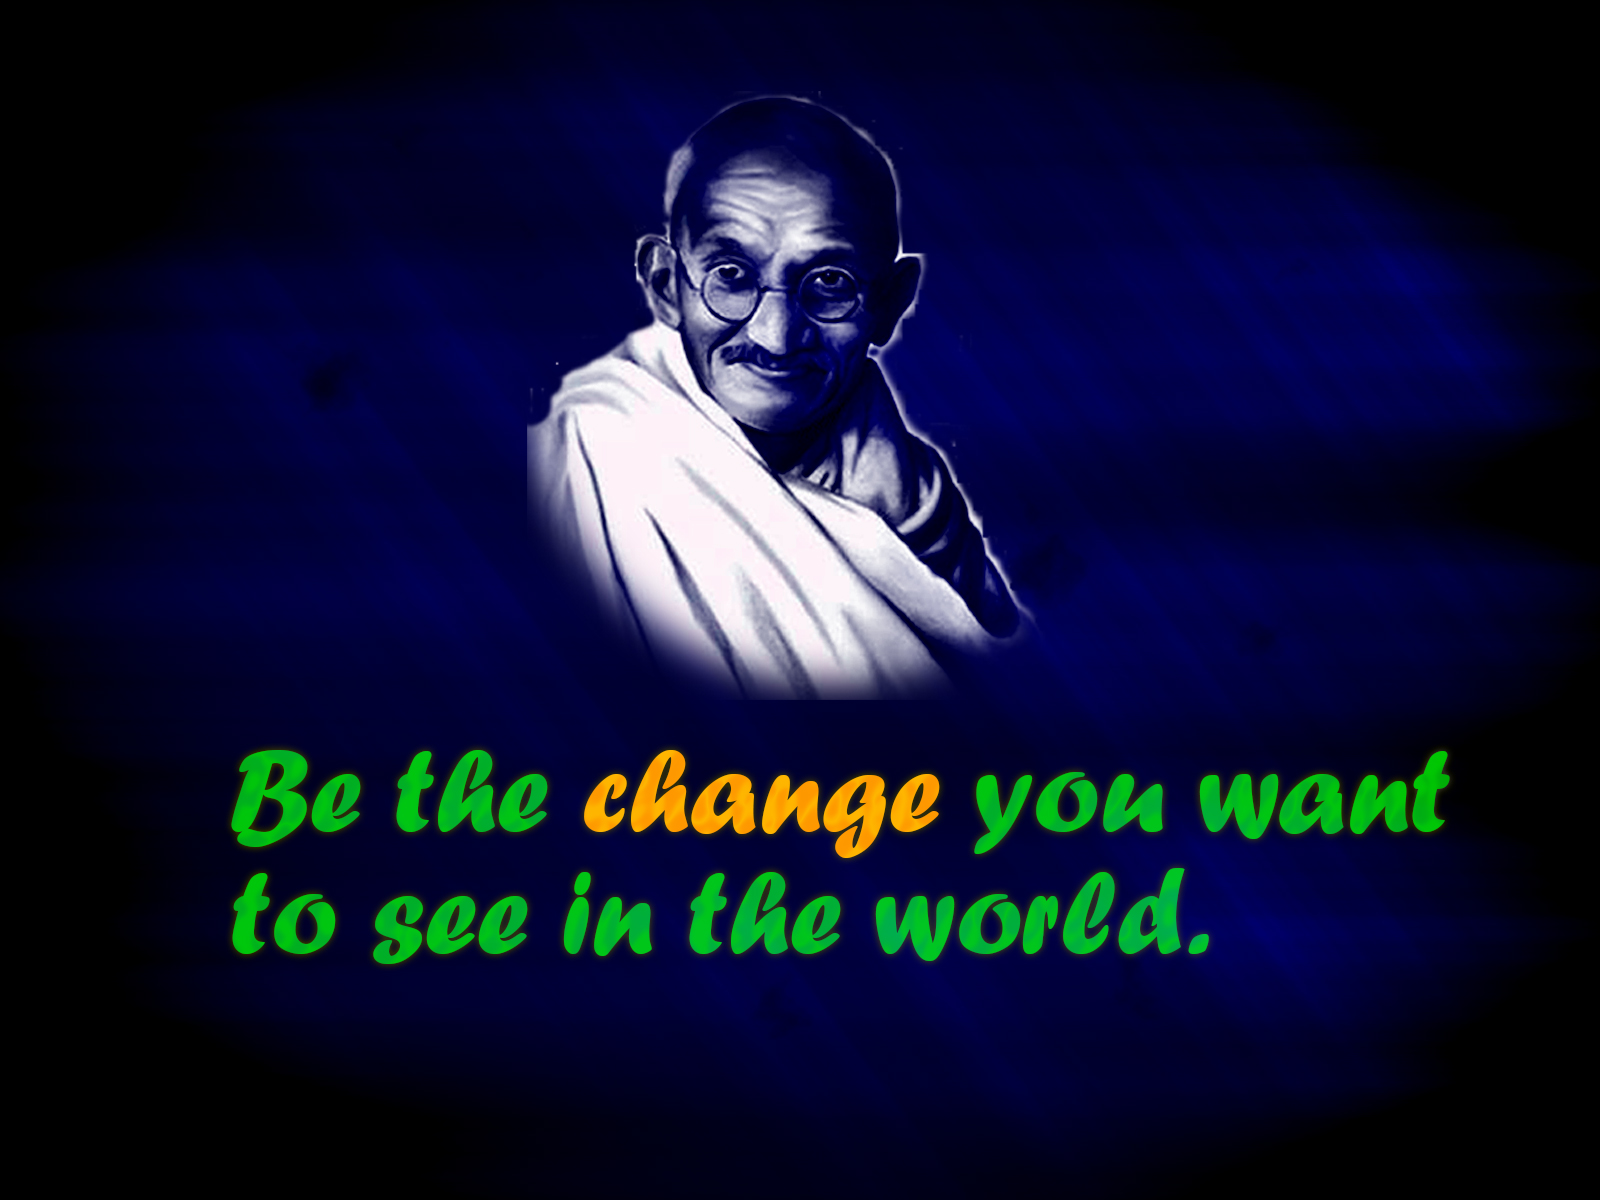 Mahatma Gandhi Quote   Be The Change You Want To See In The World